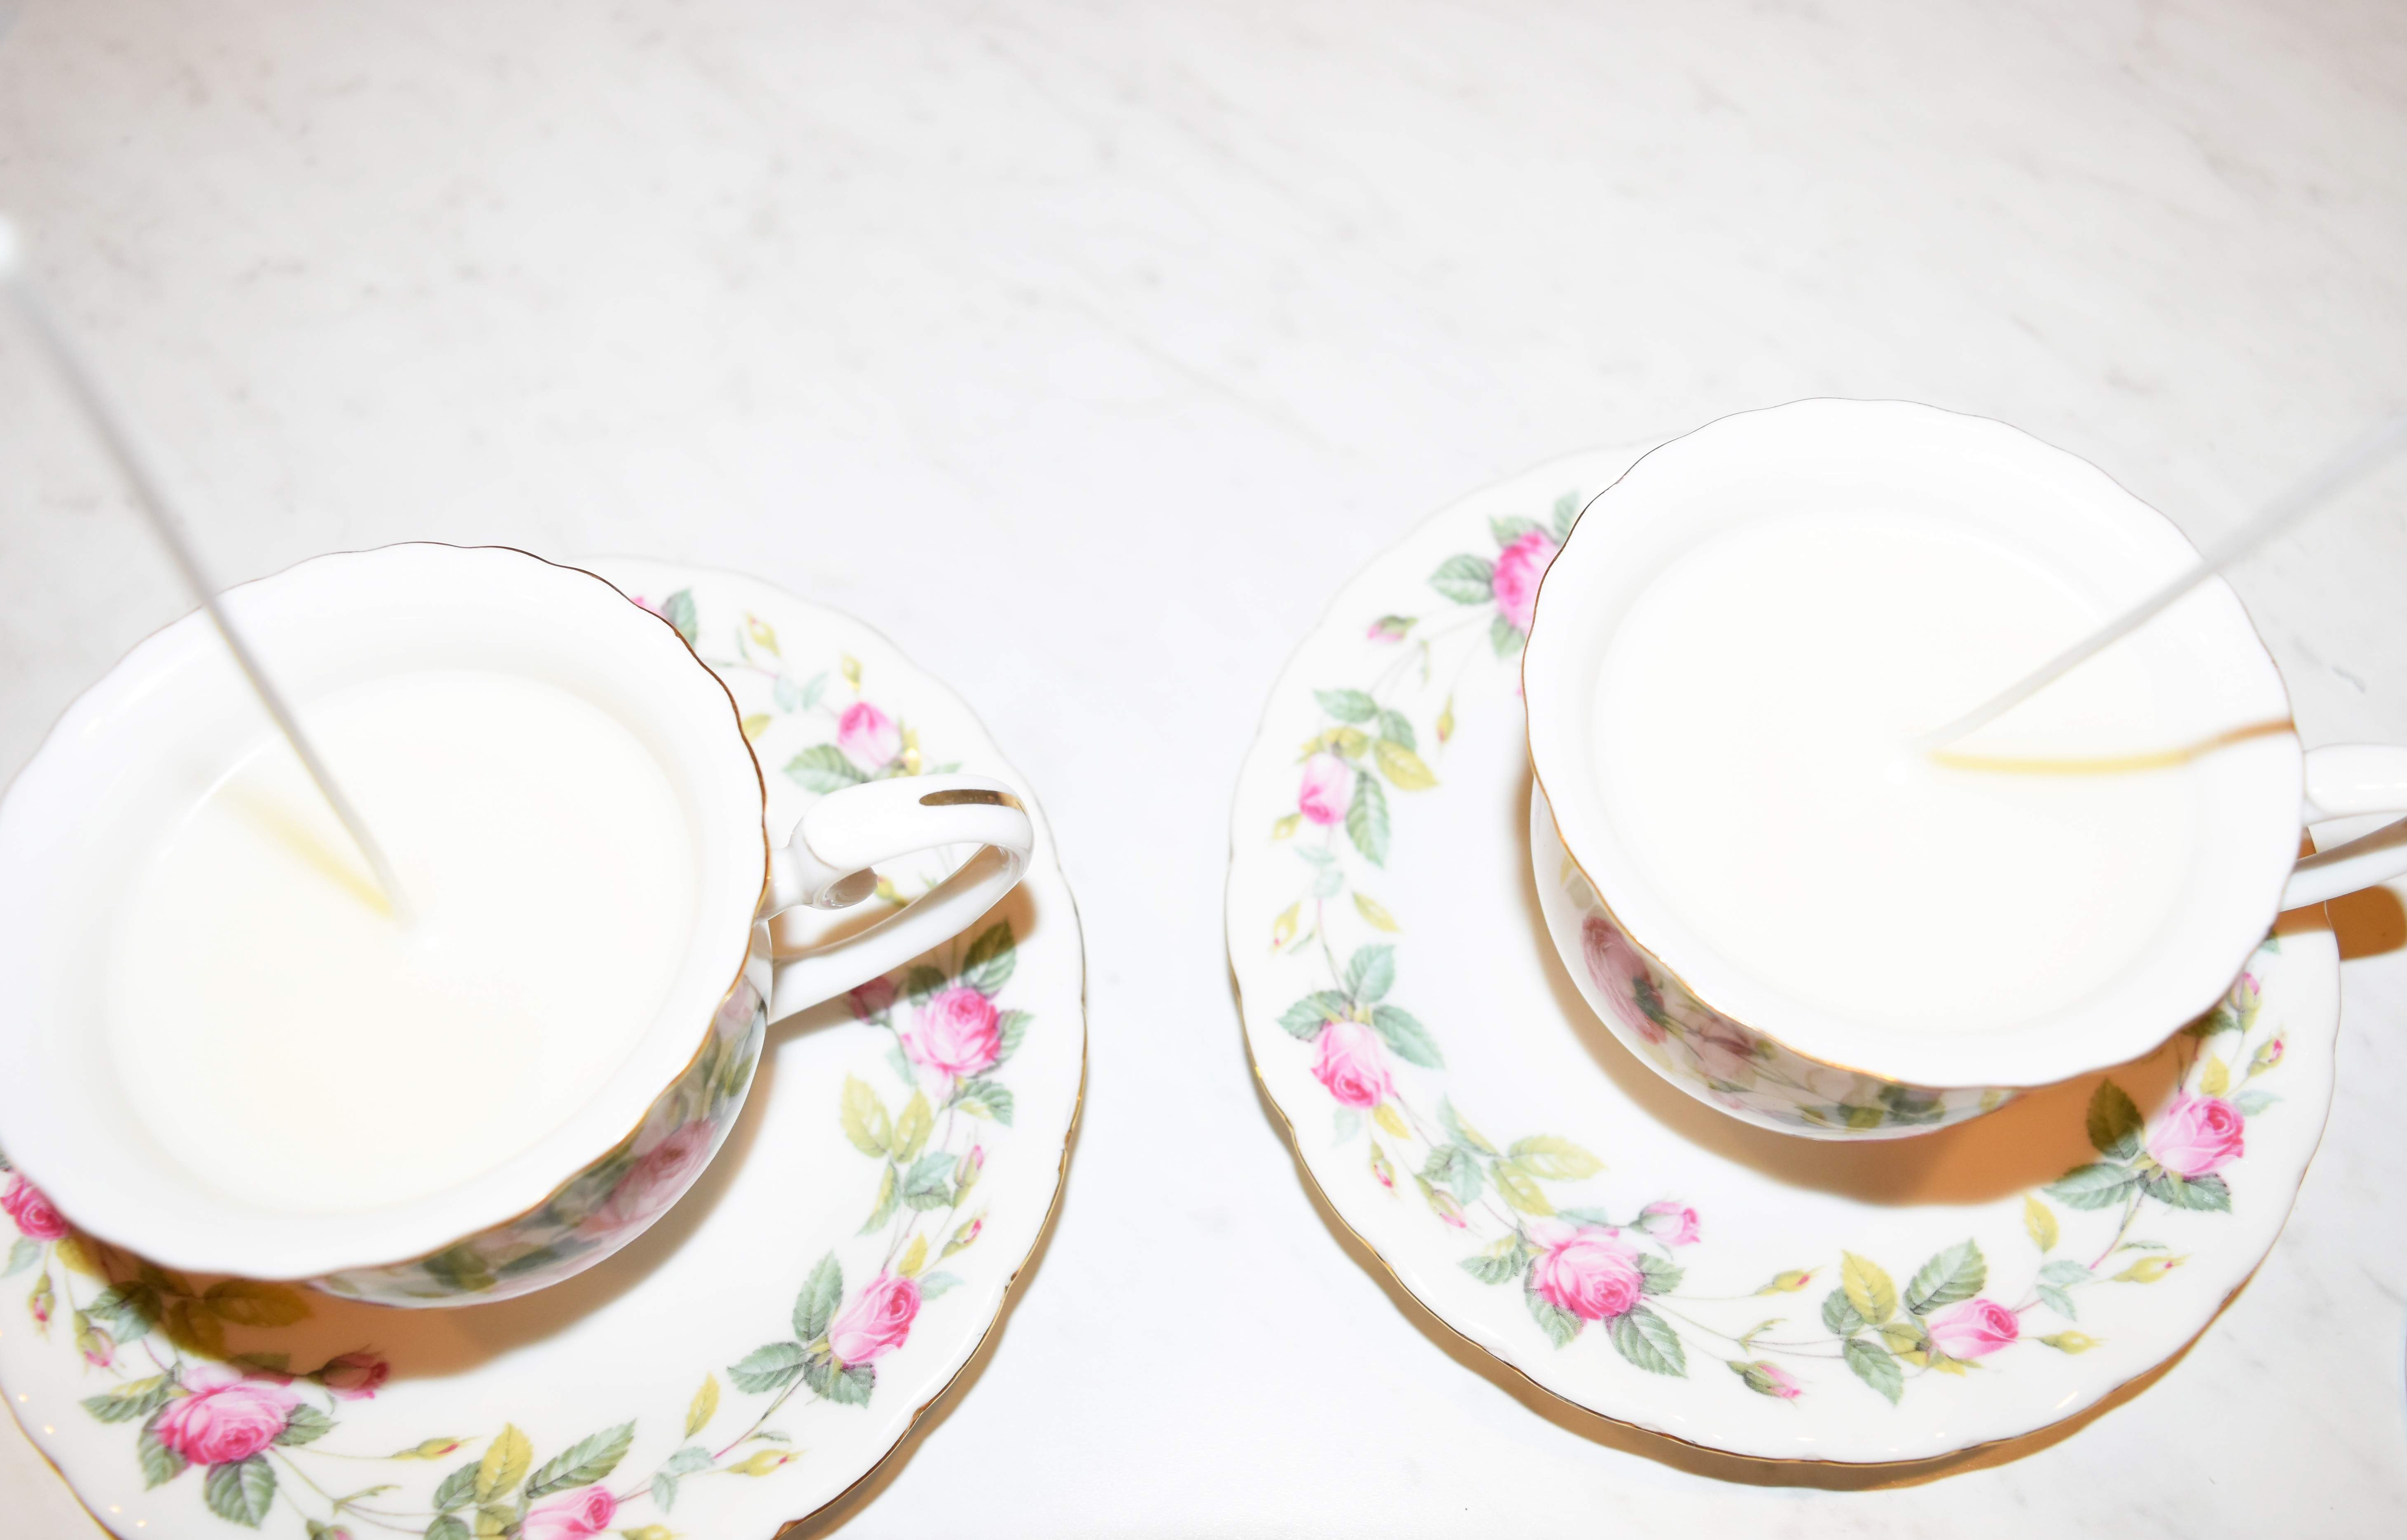 DIY Teacup Candles 16